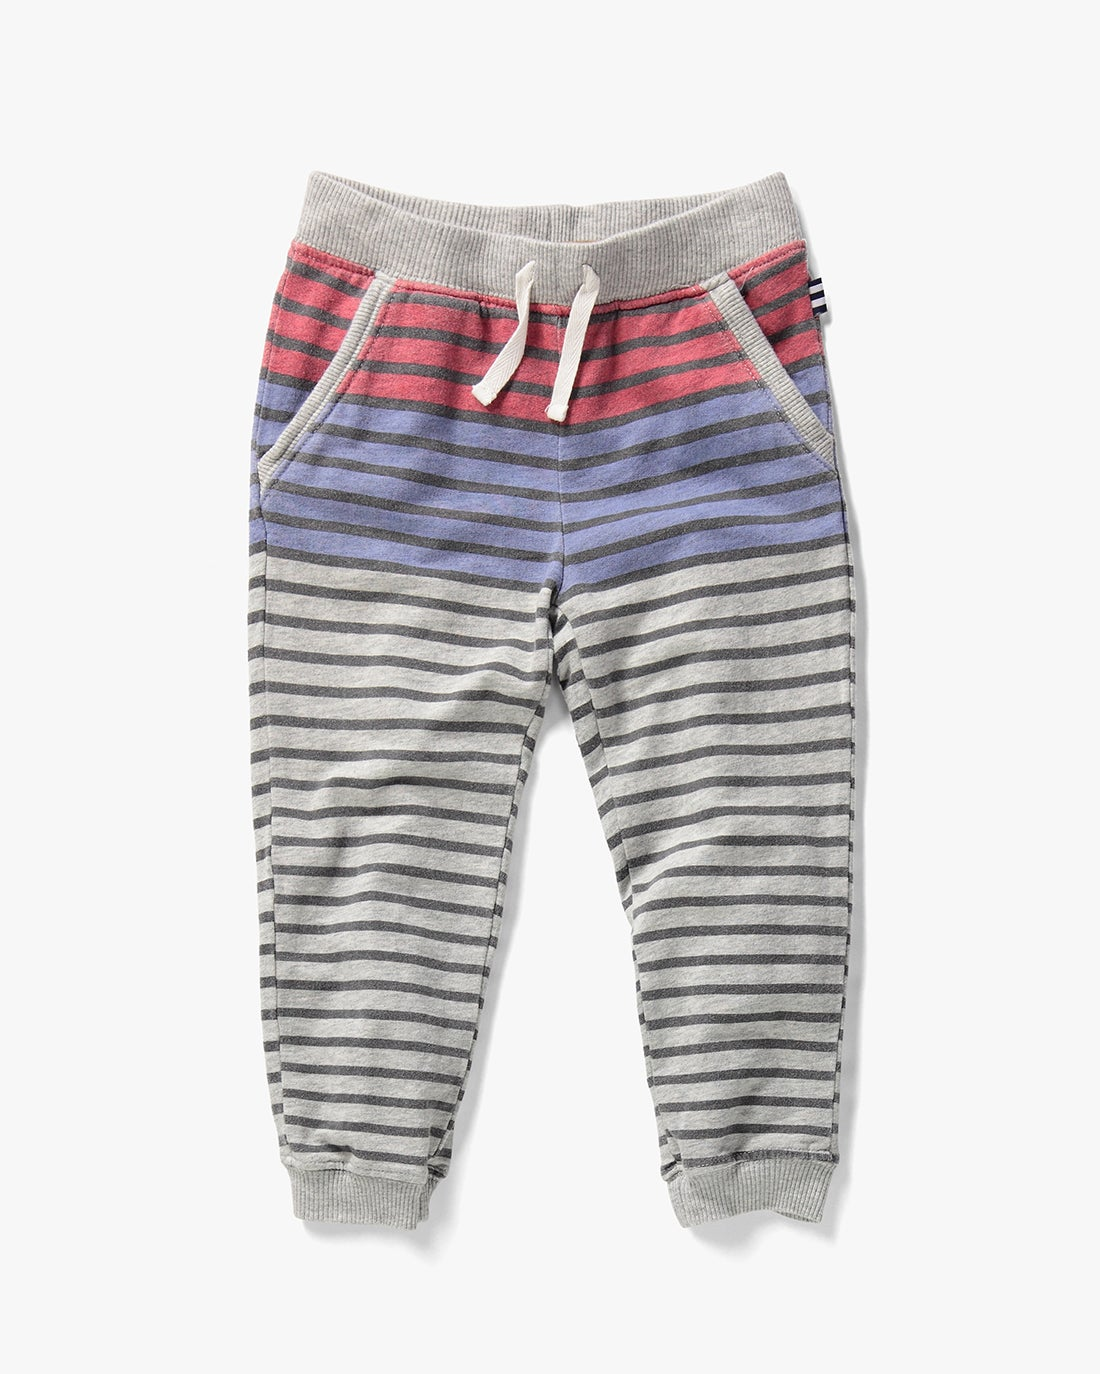 Splendid Little Boy French Terry Stripe Print Pant